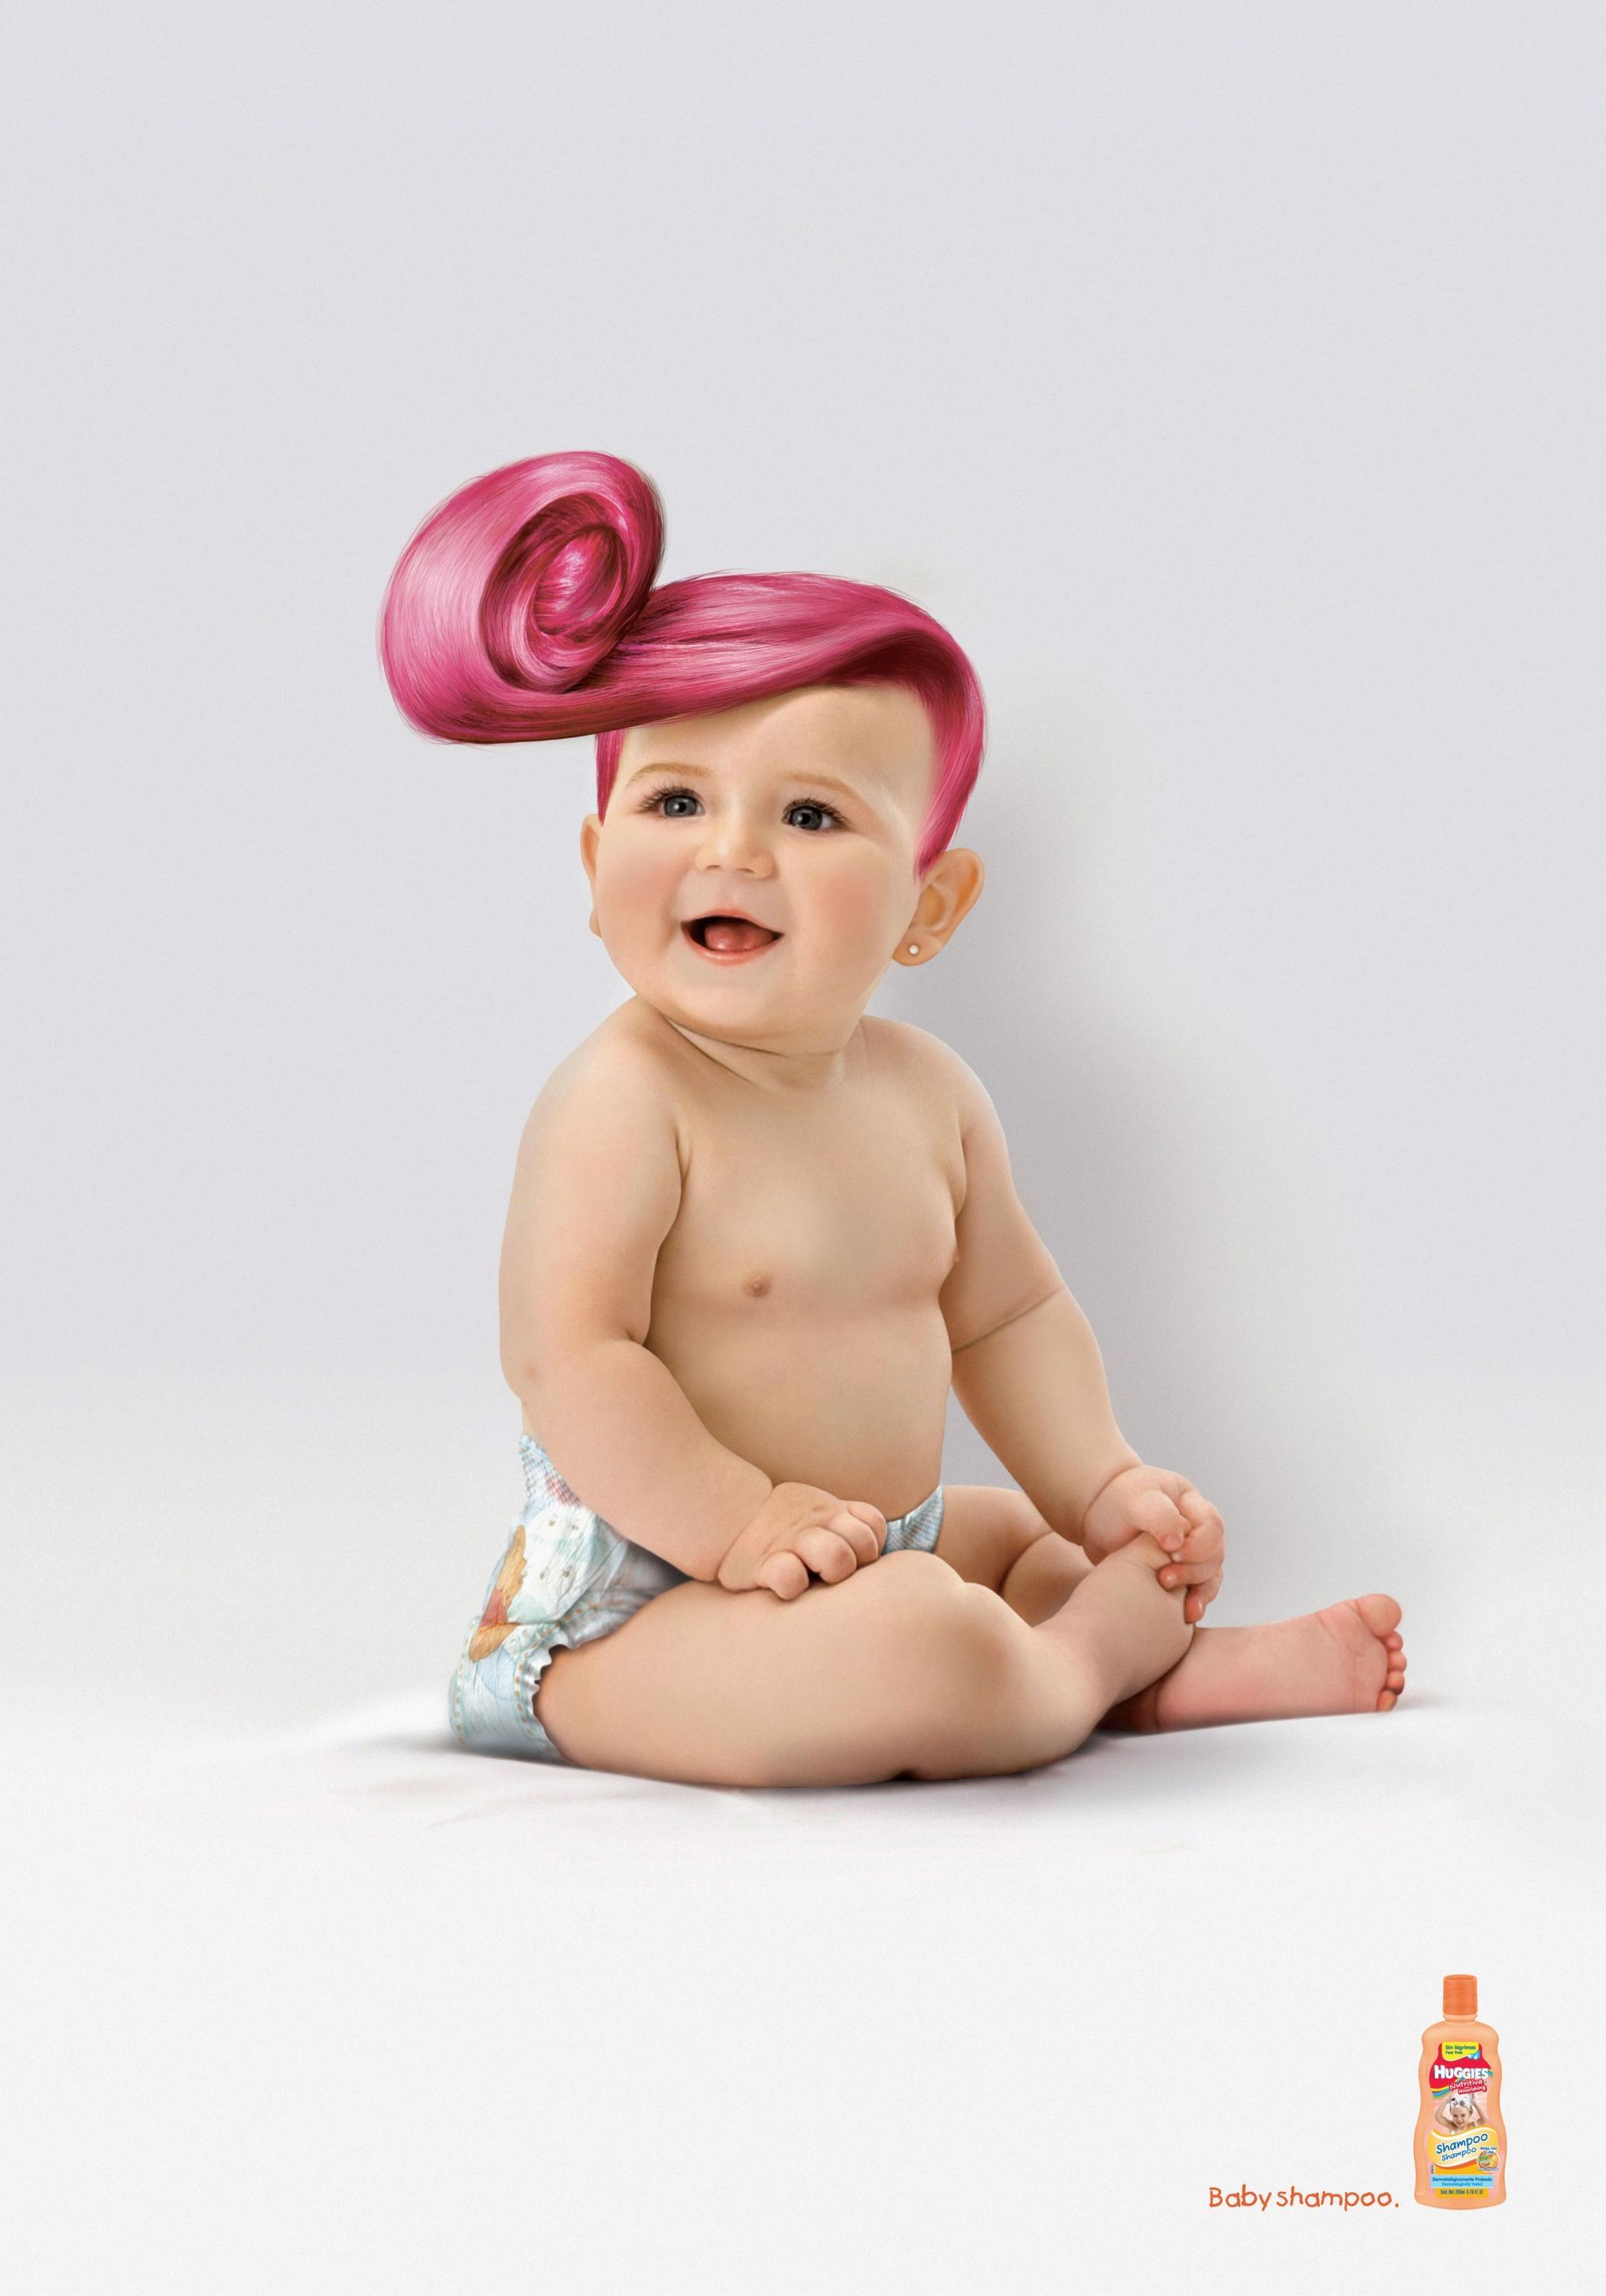 babys ch digital advertising - HD 2099×3000